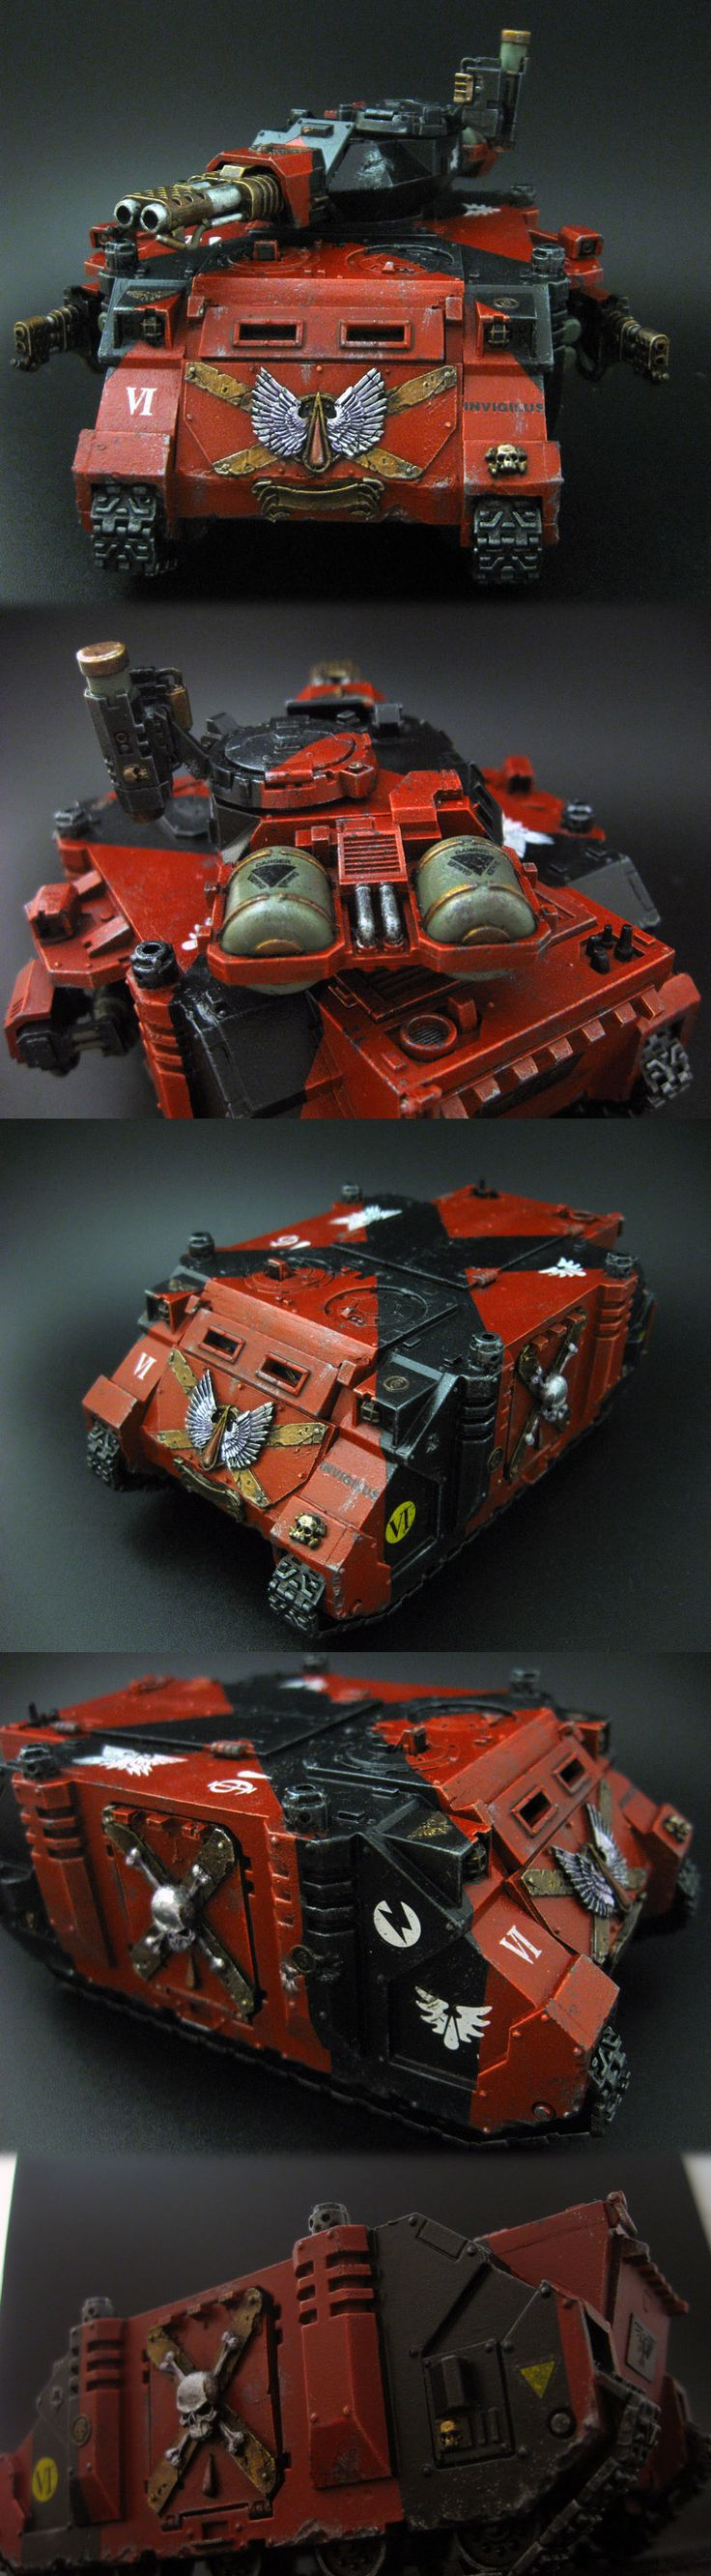 Blood Angels Army Project (pic carpet bombing) - Page 48